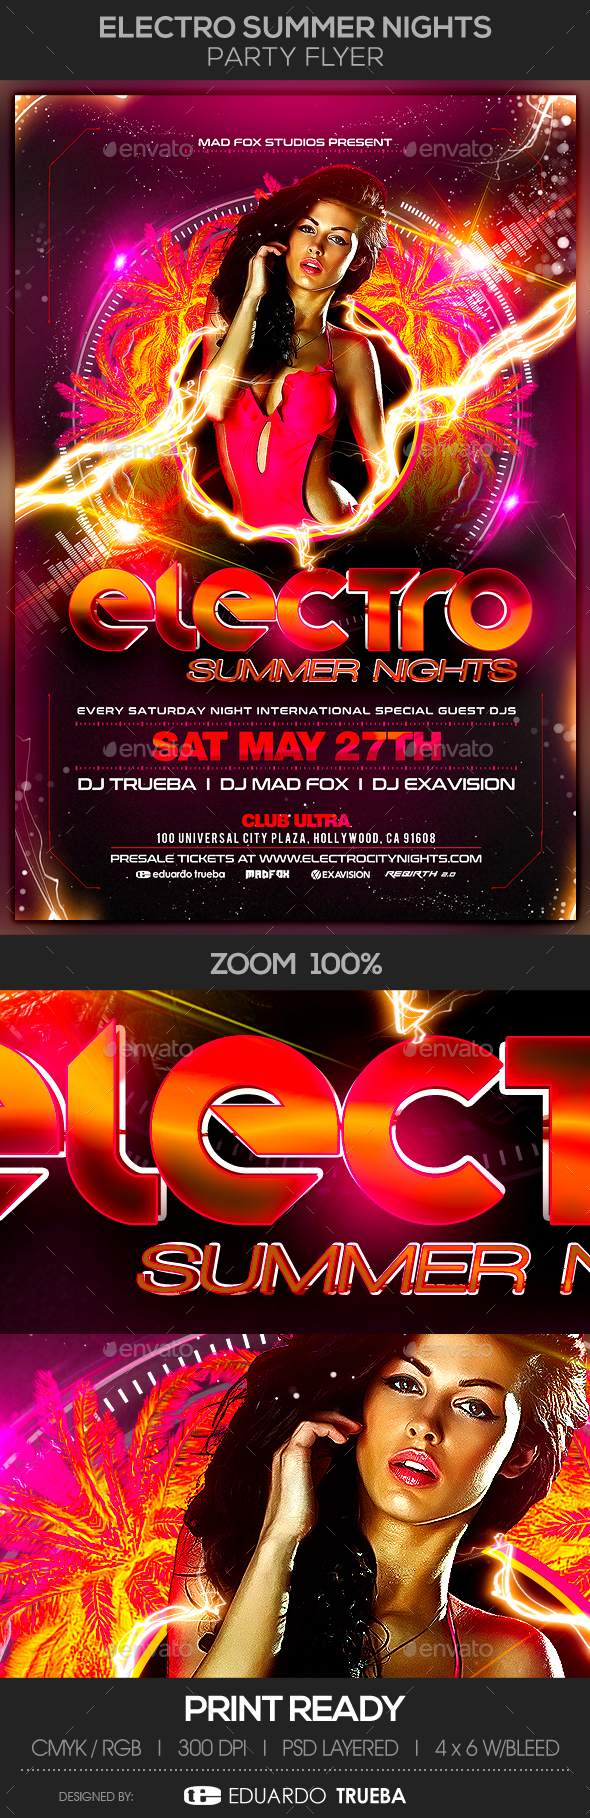 Electro Summer Nights Party Flyer - Clubs & Parties Events